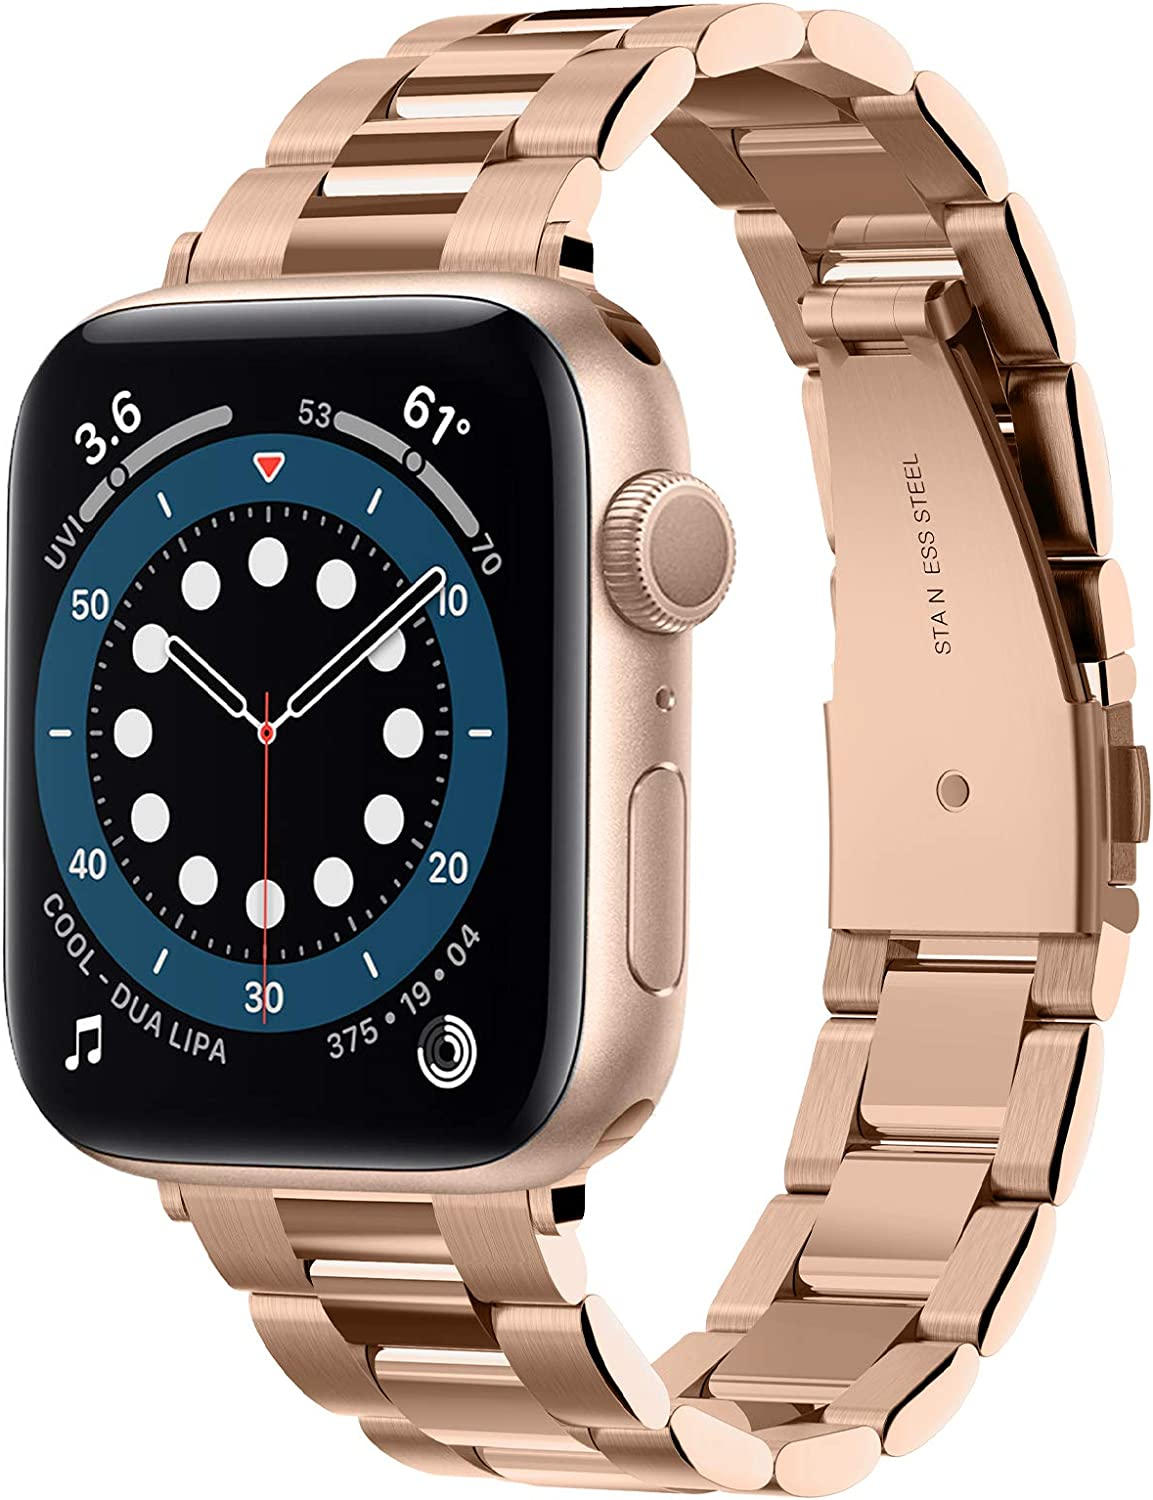 Spigen Modern Fit Designed For Apple Watch Band for 40mm/38mm Series 6/SE/5/4/3/2/1 - Rose Gold